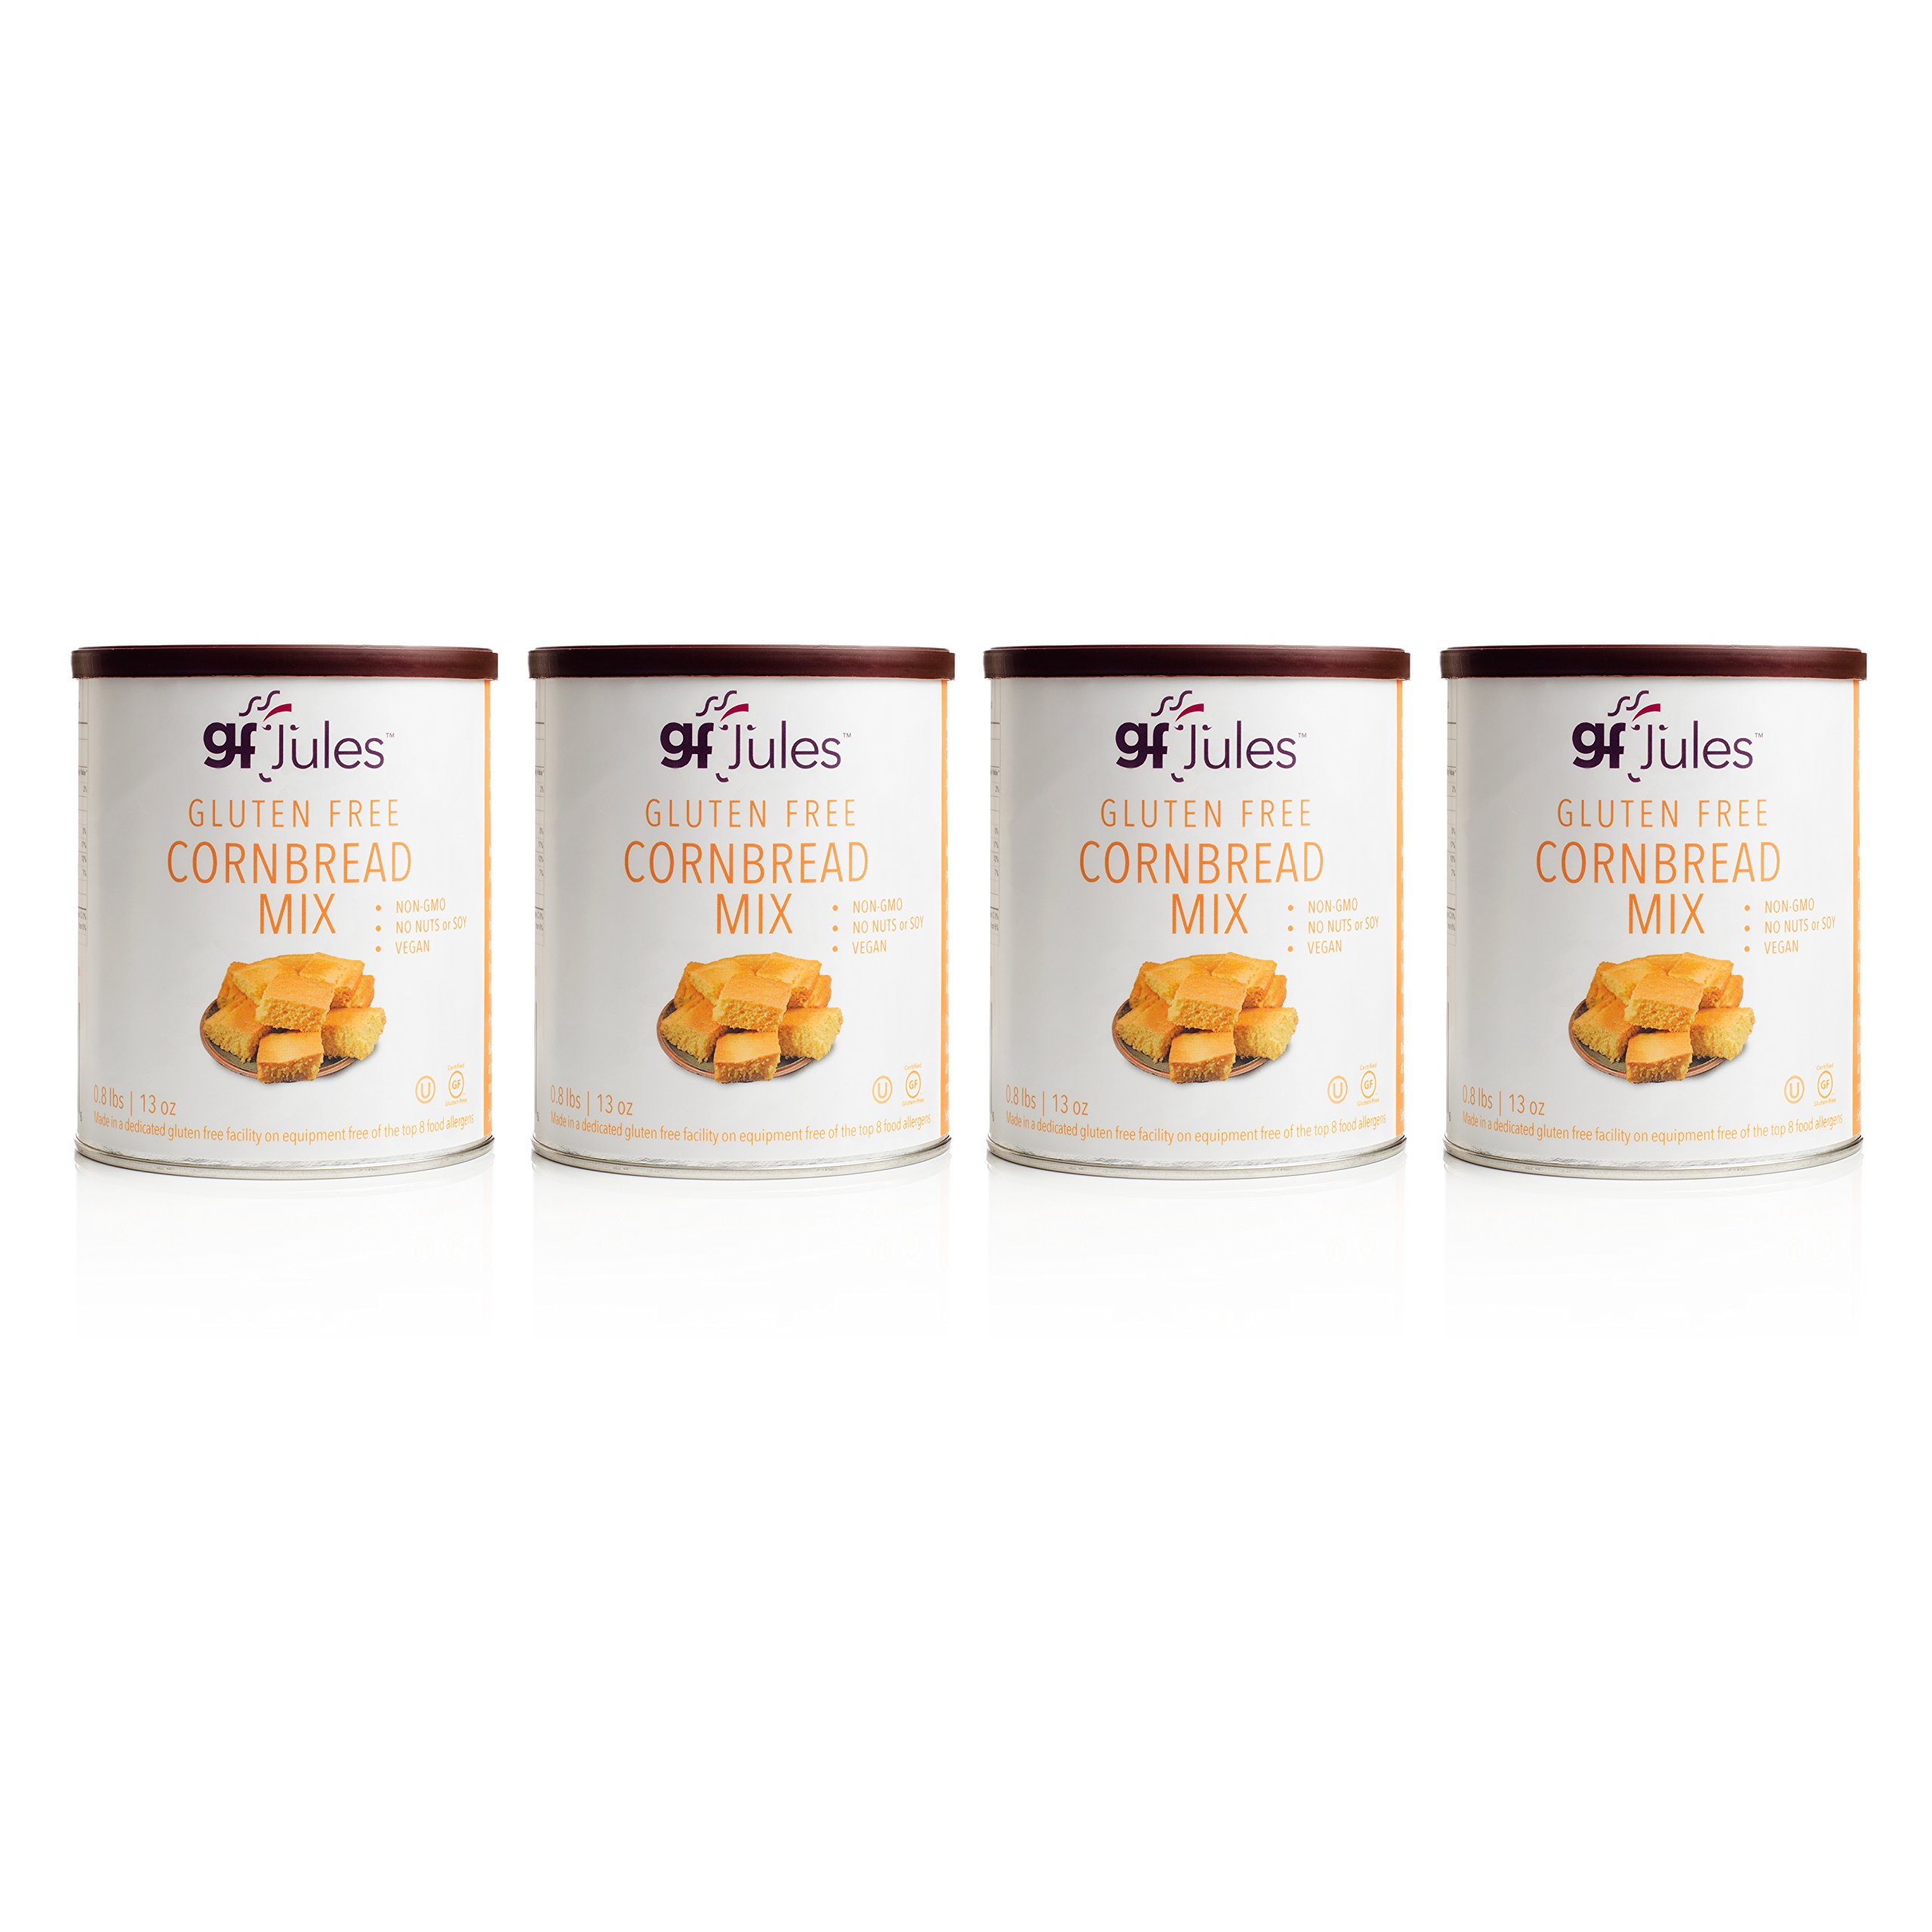 gfJules Gluten Free Cornbread Mix - Voted #1 by GF Consumers 0.8 lbs, Pack of 4 by gfJules